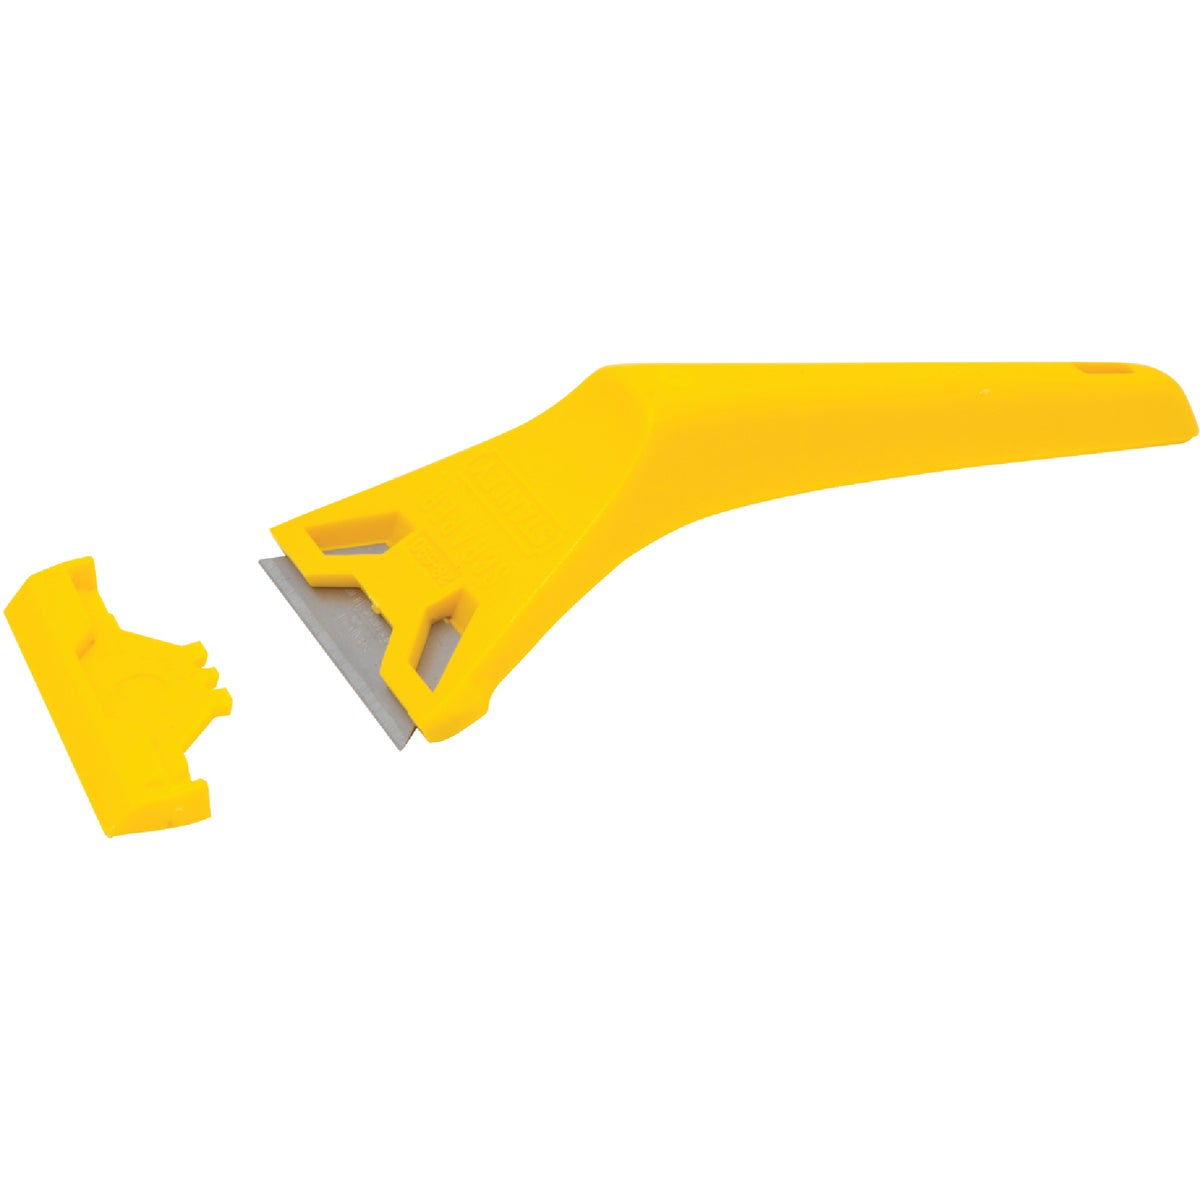 WINDOW SCRAPER - 28-593 by Stanley Tools